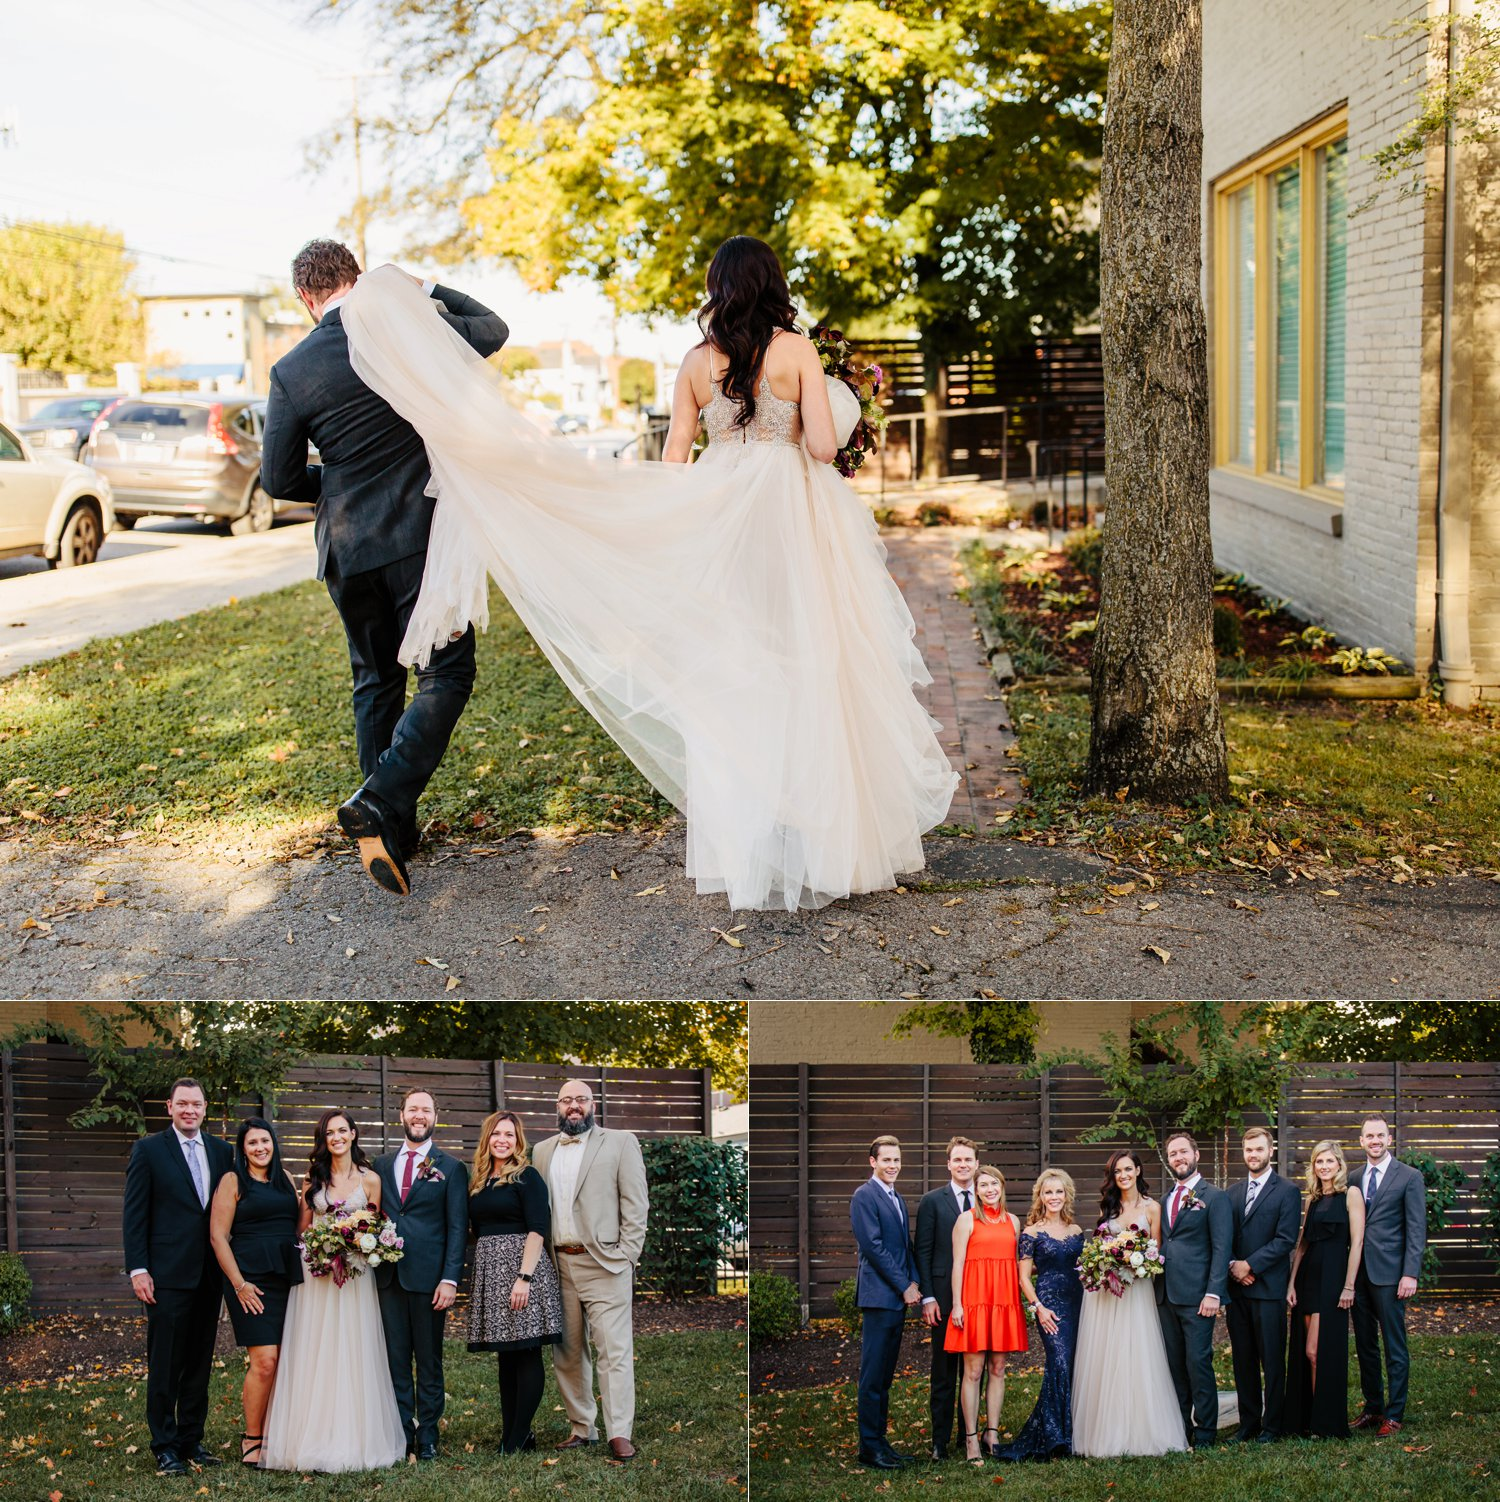 CK-Photo-Nashville-engagement-wedding-photographer-the-cordelle_0018.jpg